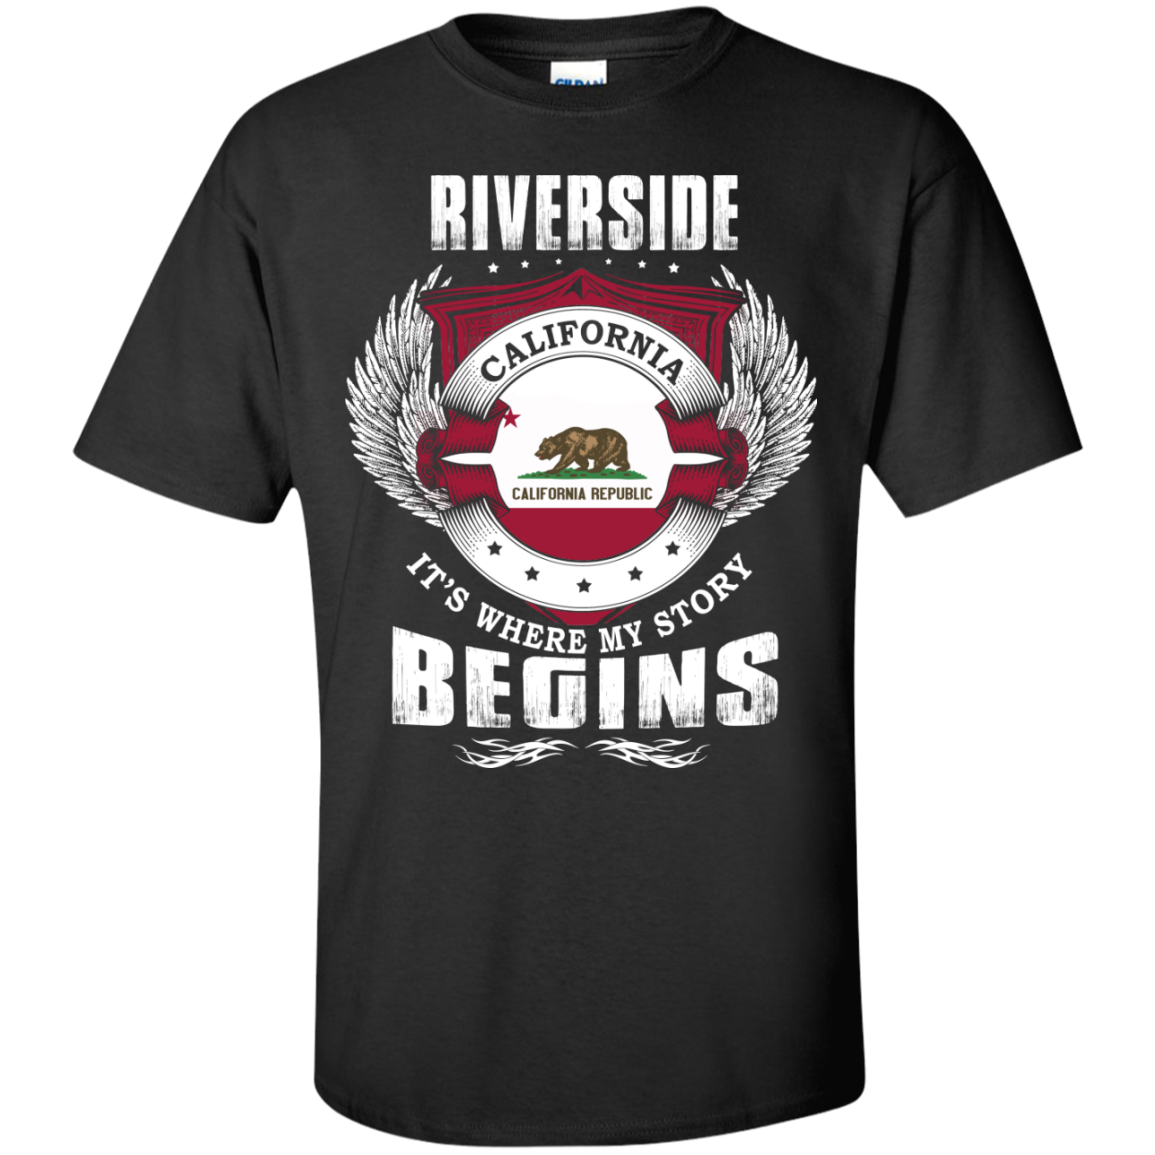 RIVERSIDE CALIFORNIA, CALIFORNIA REPUBLIC, It's Where My Story BEGINS